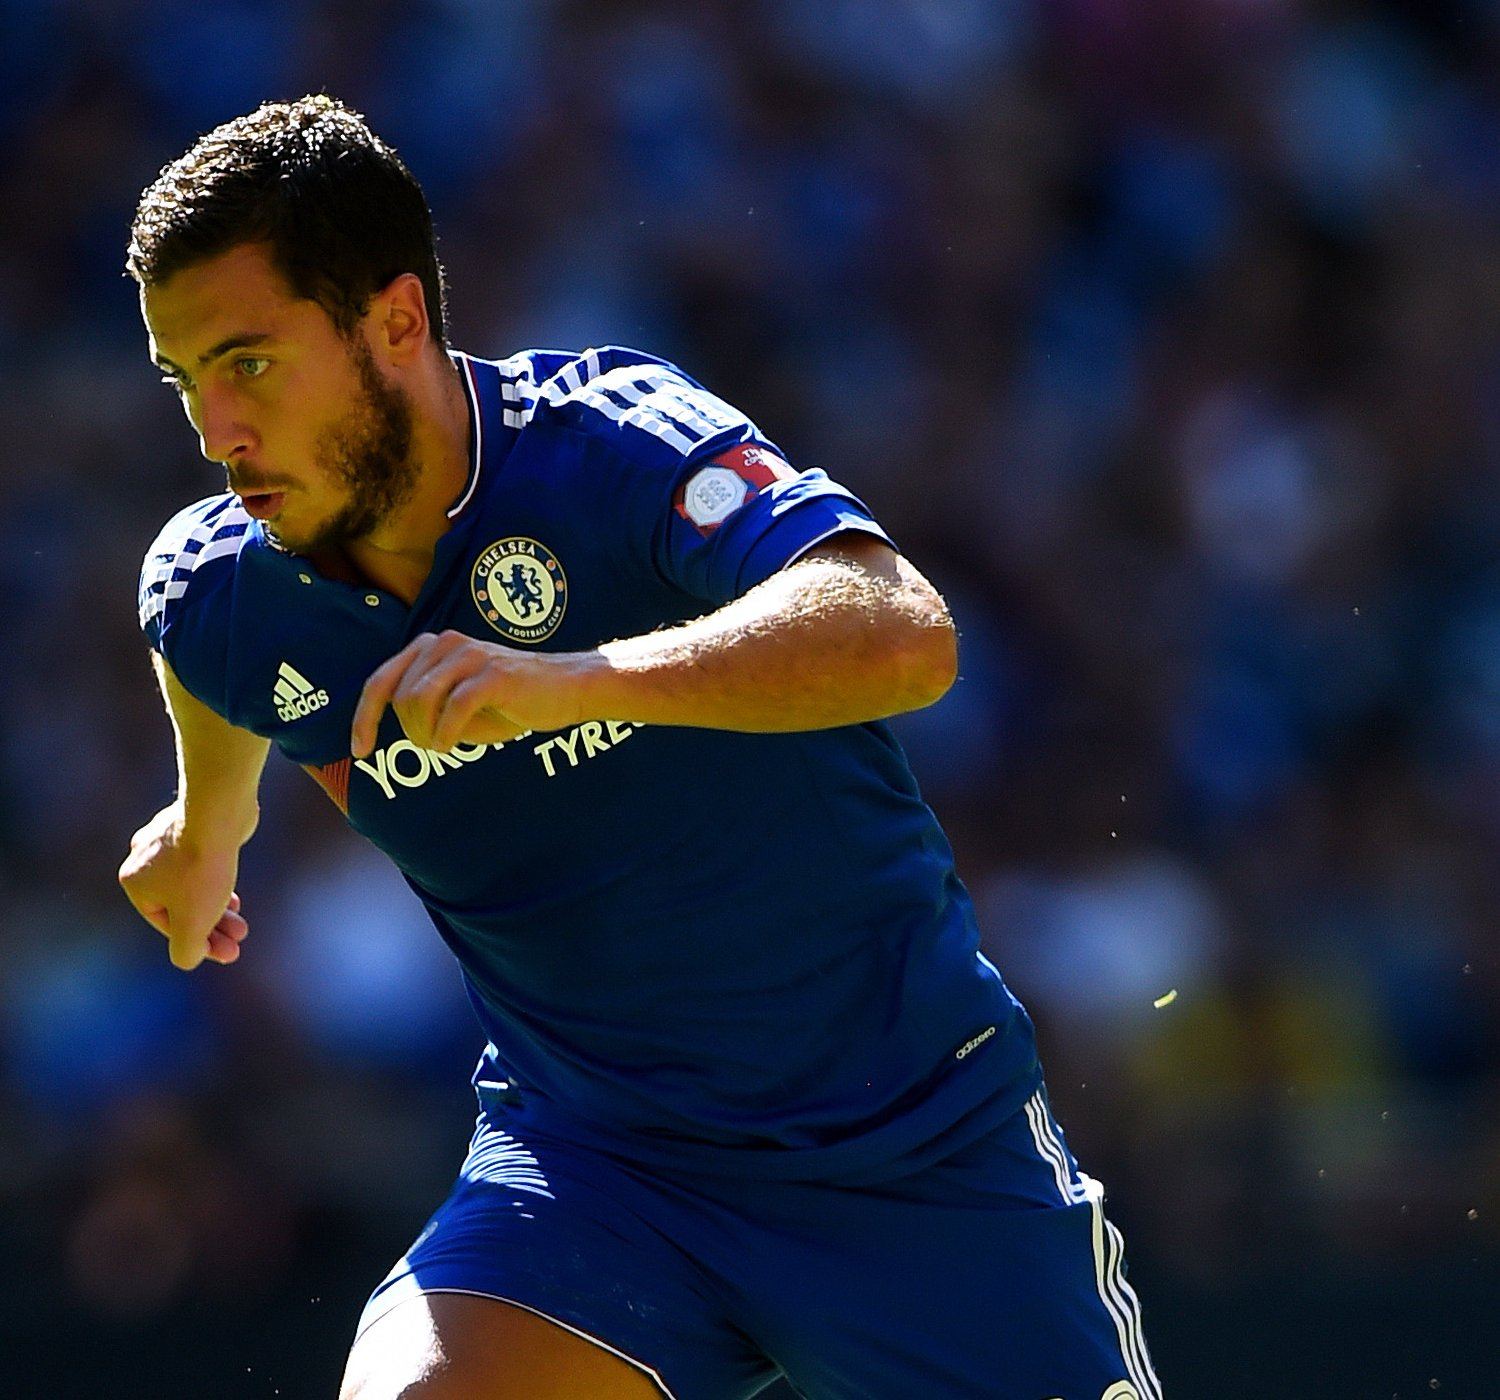 Psg Vs Chelsea Live Score Highlights From Champions: Chelsea Vs. Fiorentina: Live Score, Highlights From